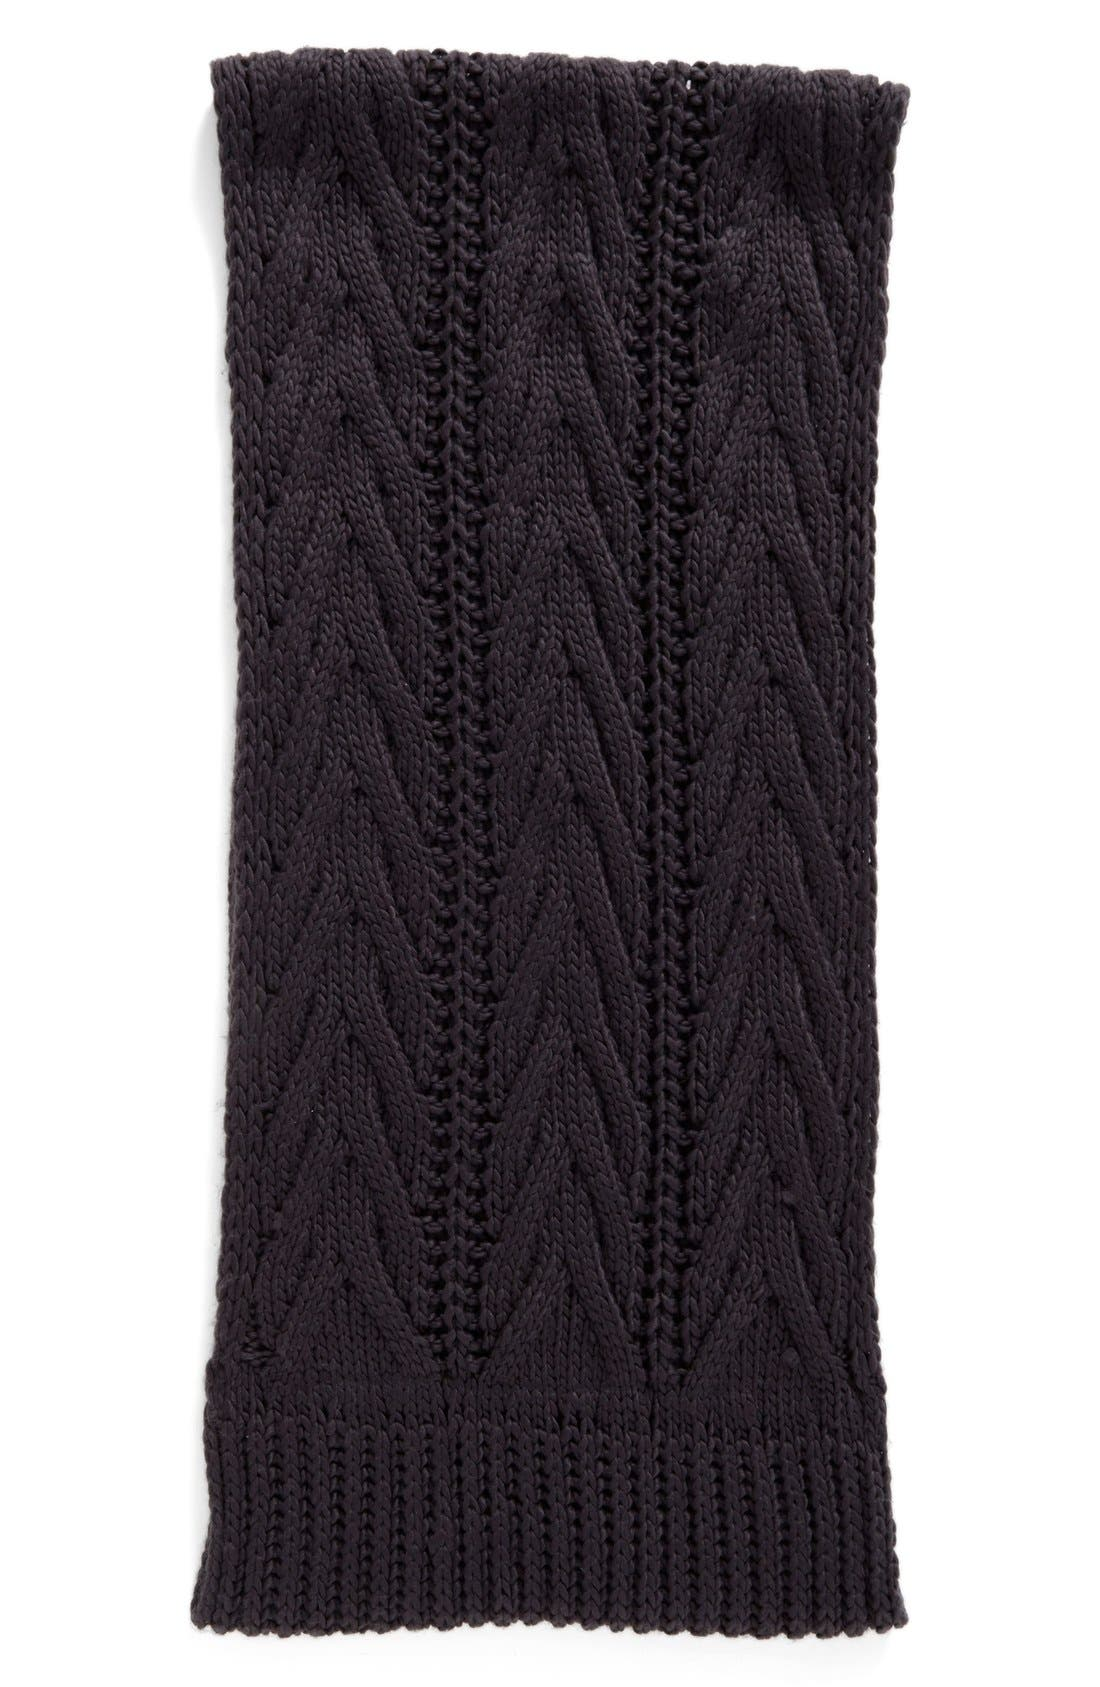 Alternate Image 3  - BP. Cable Knit Infinity Scarf (Special Purchase)